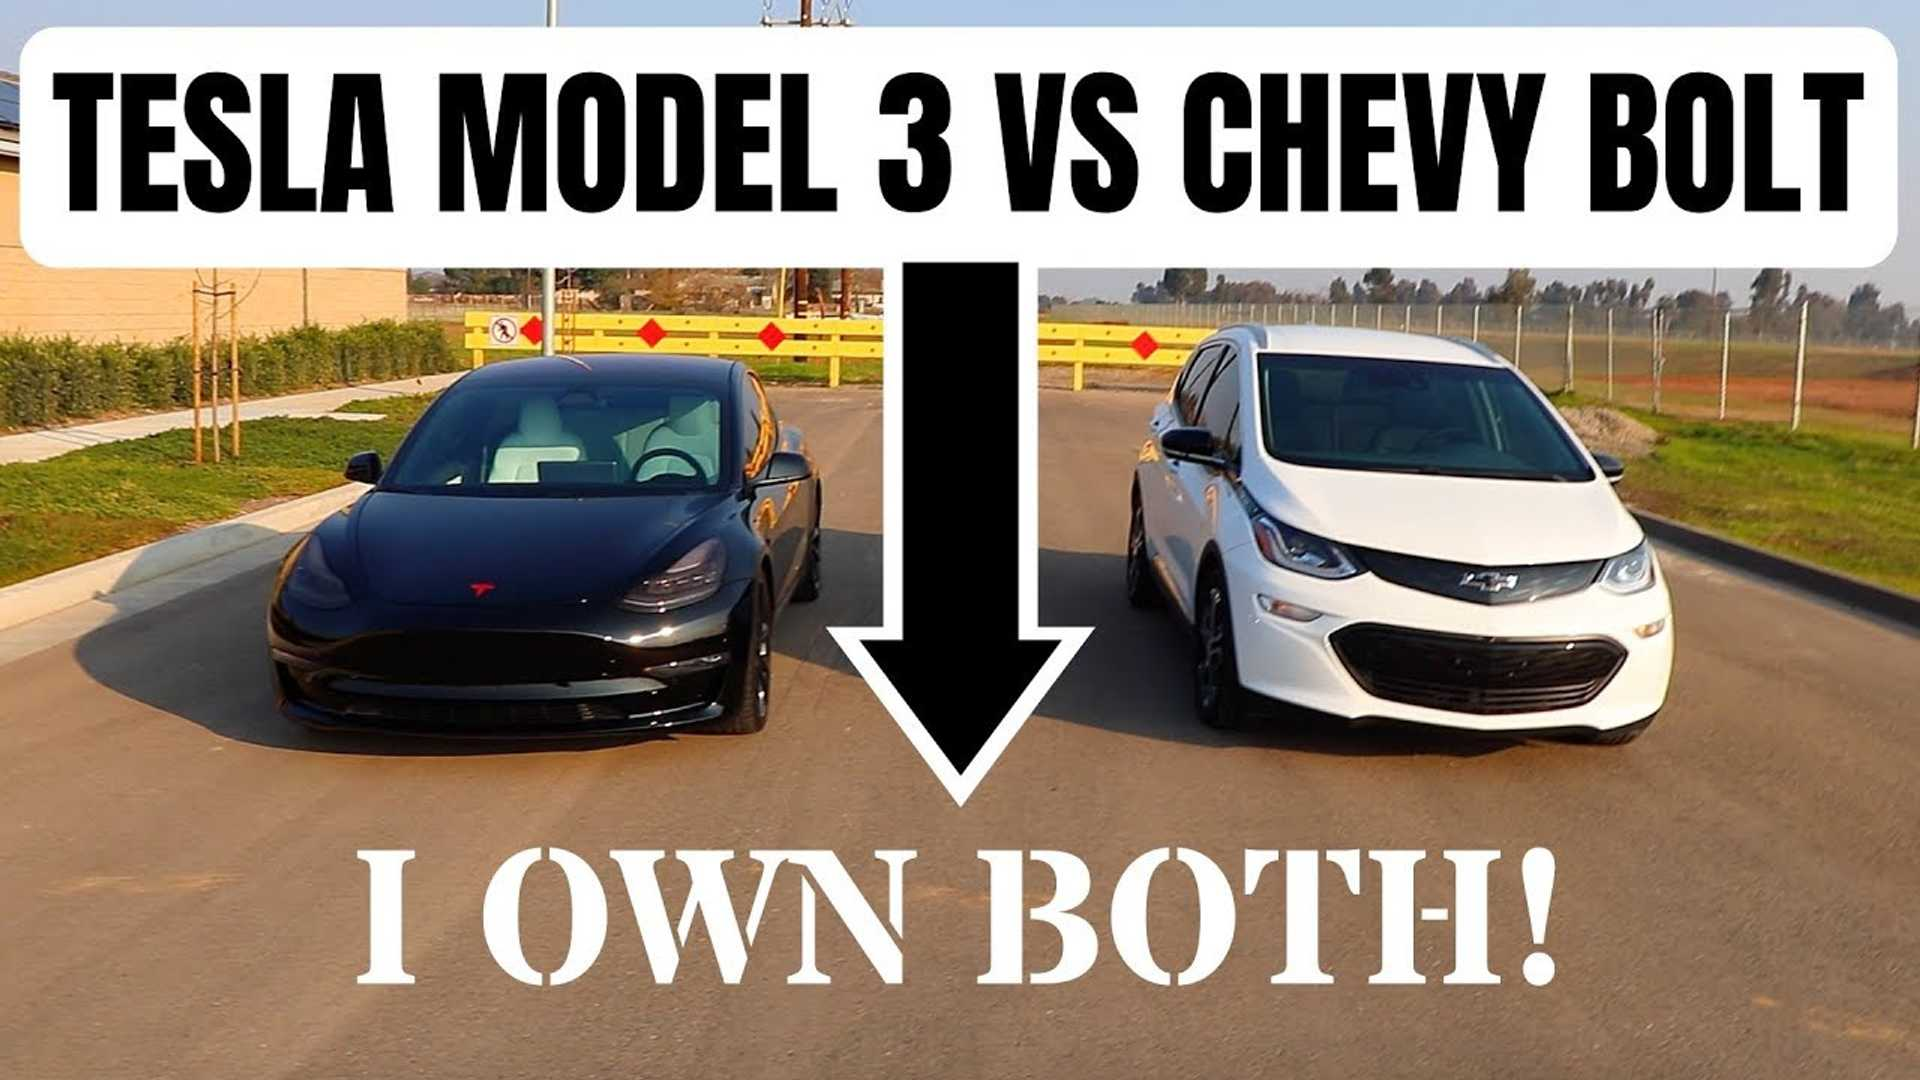 Tesla Model 3 Vs Chevy Bolt From An Owner's Perspective